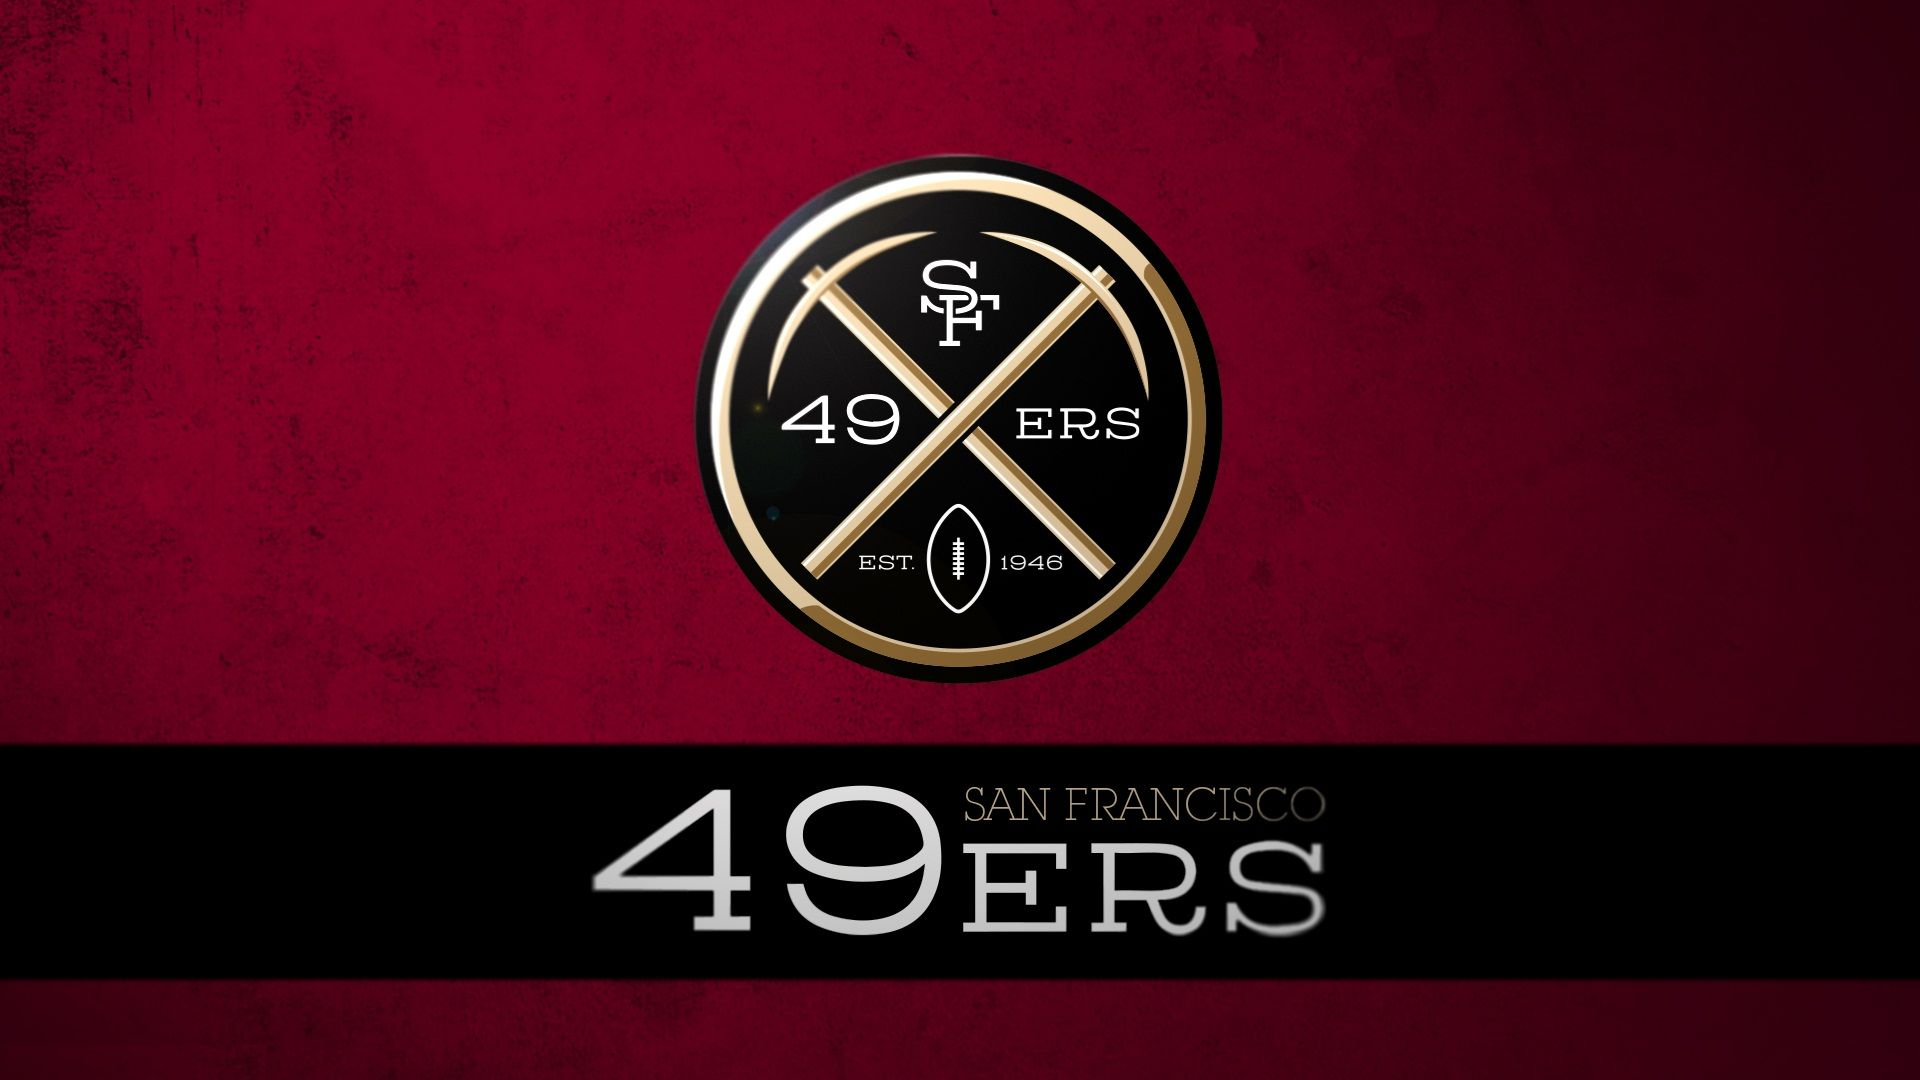 49ers wallpaper for android nfl pinterest san francisco 49ers 49ers wallpaper for android voltagebd